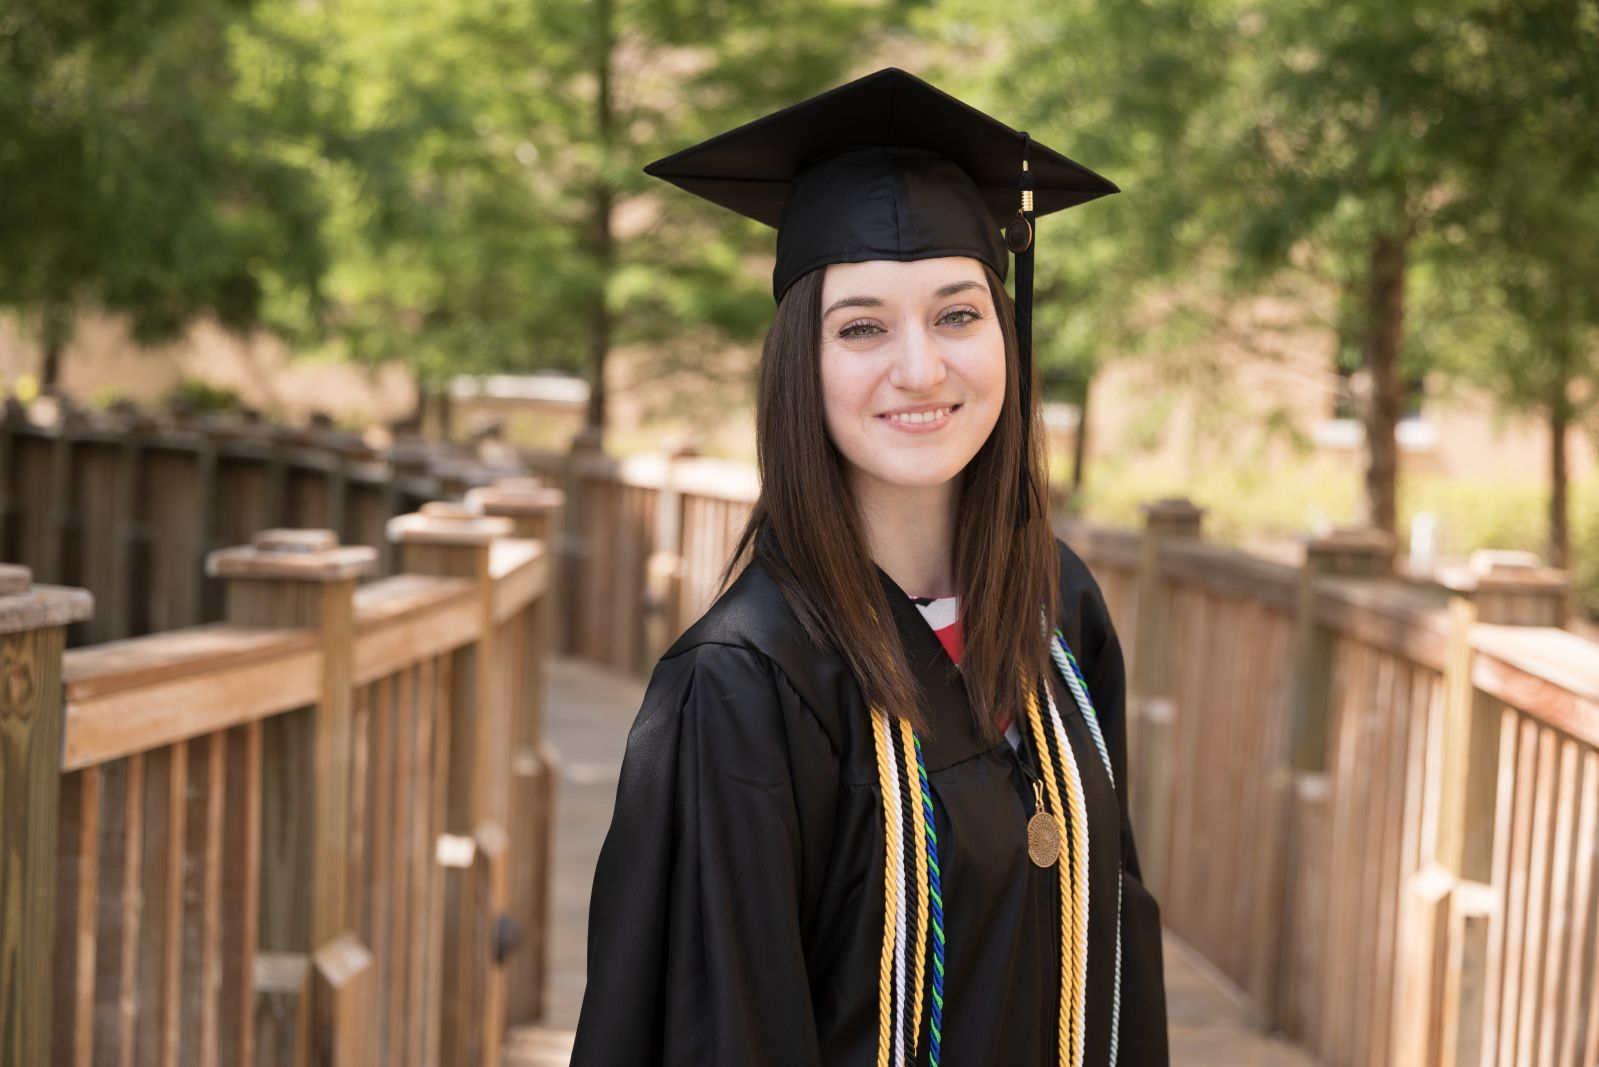 A female college student poses in a cap and gown on campus.